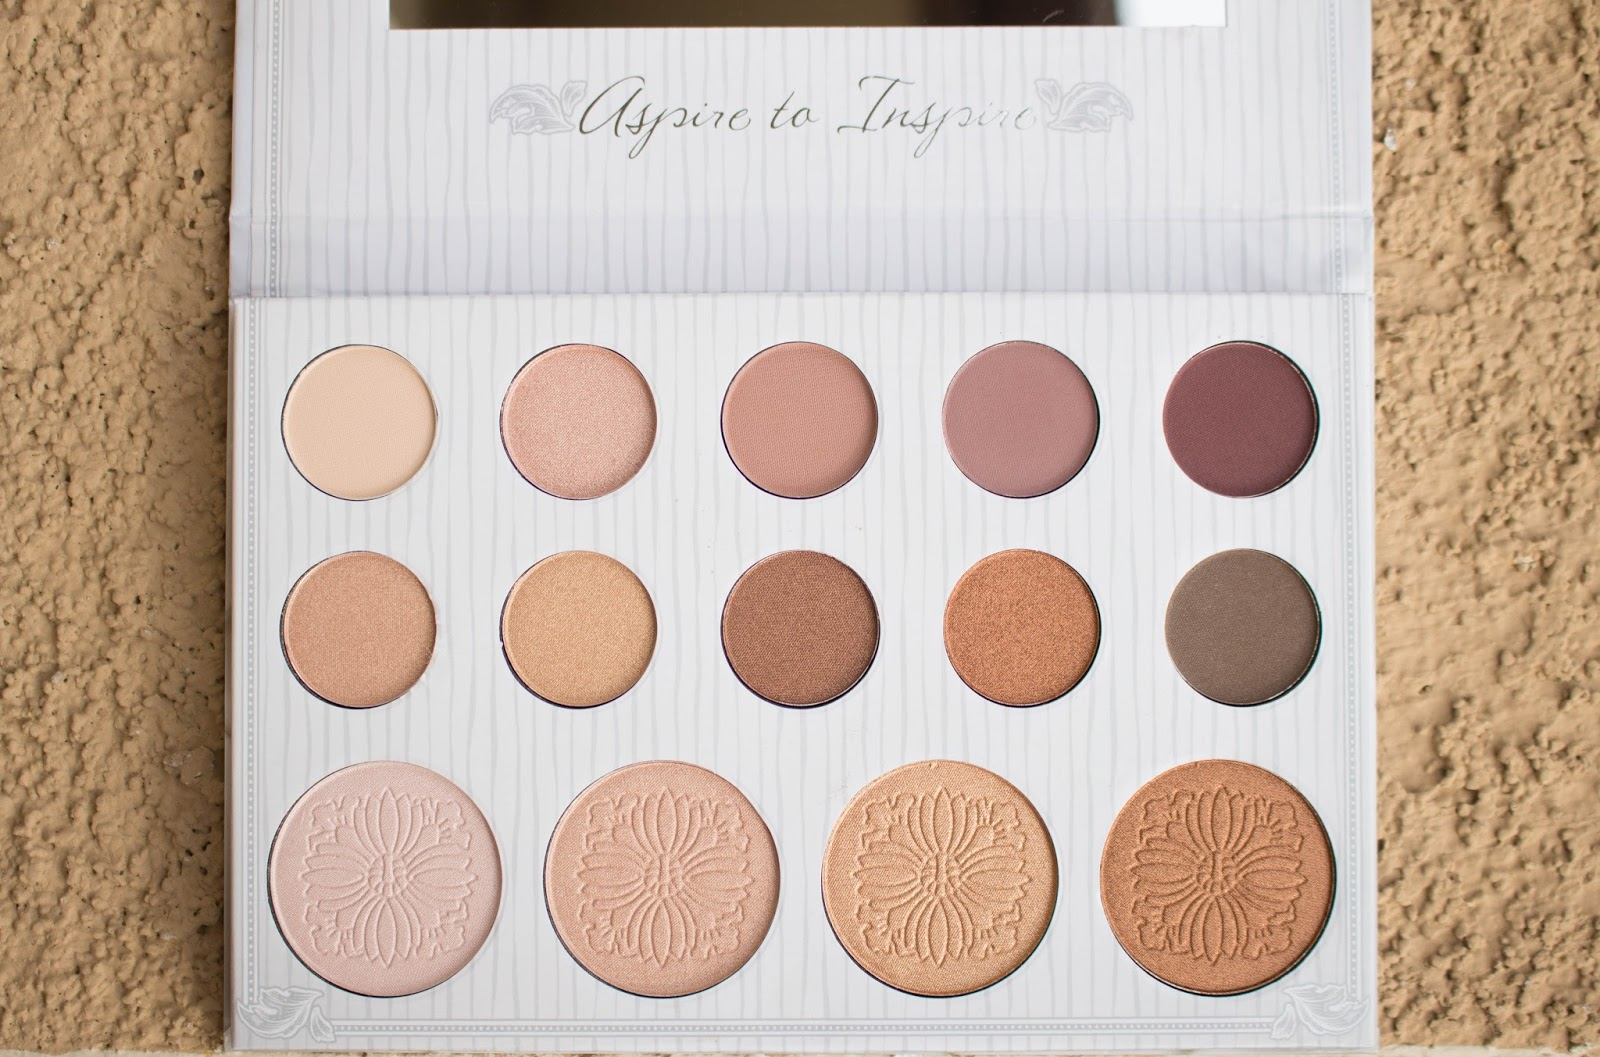 BH Cosmetics Nude Blush 10 Color Palette Pink Rose Brown